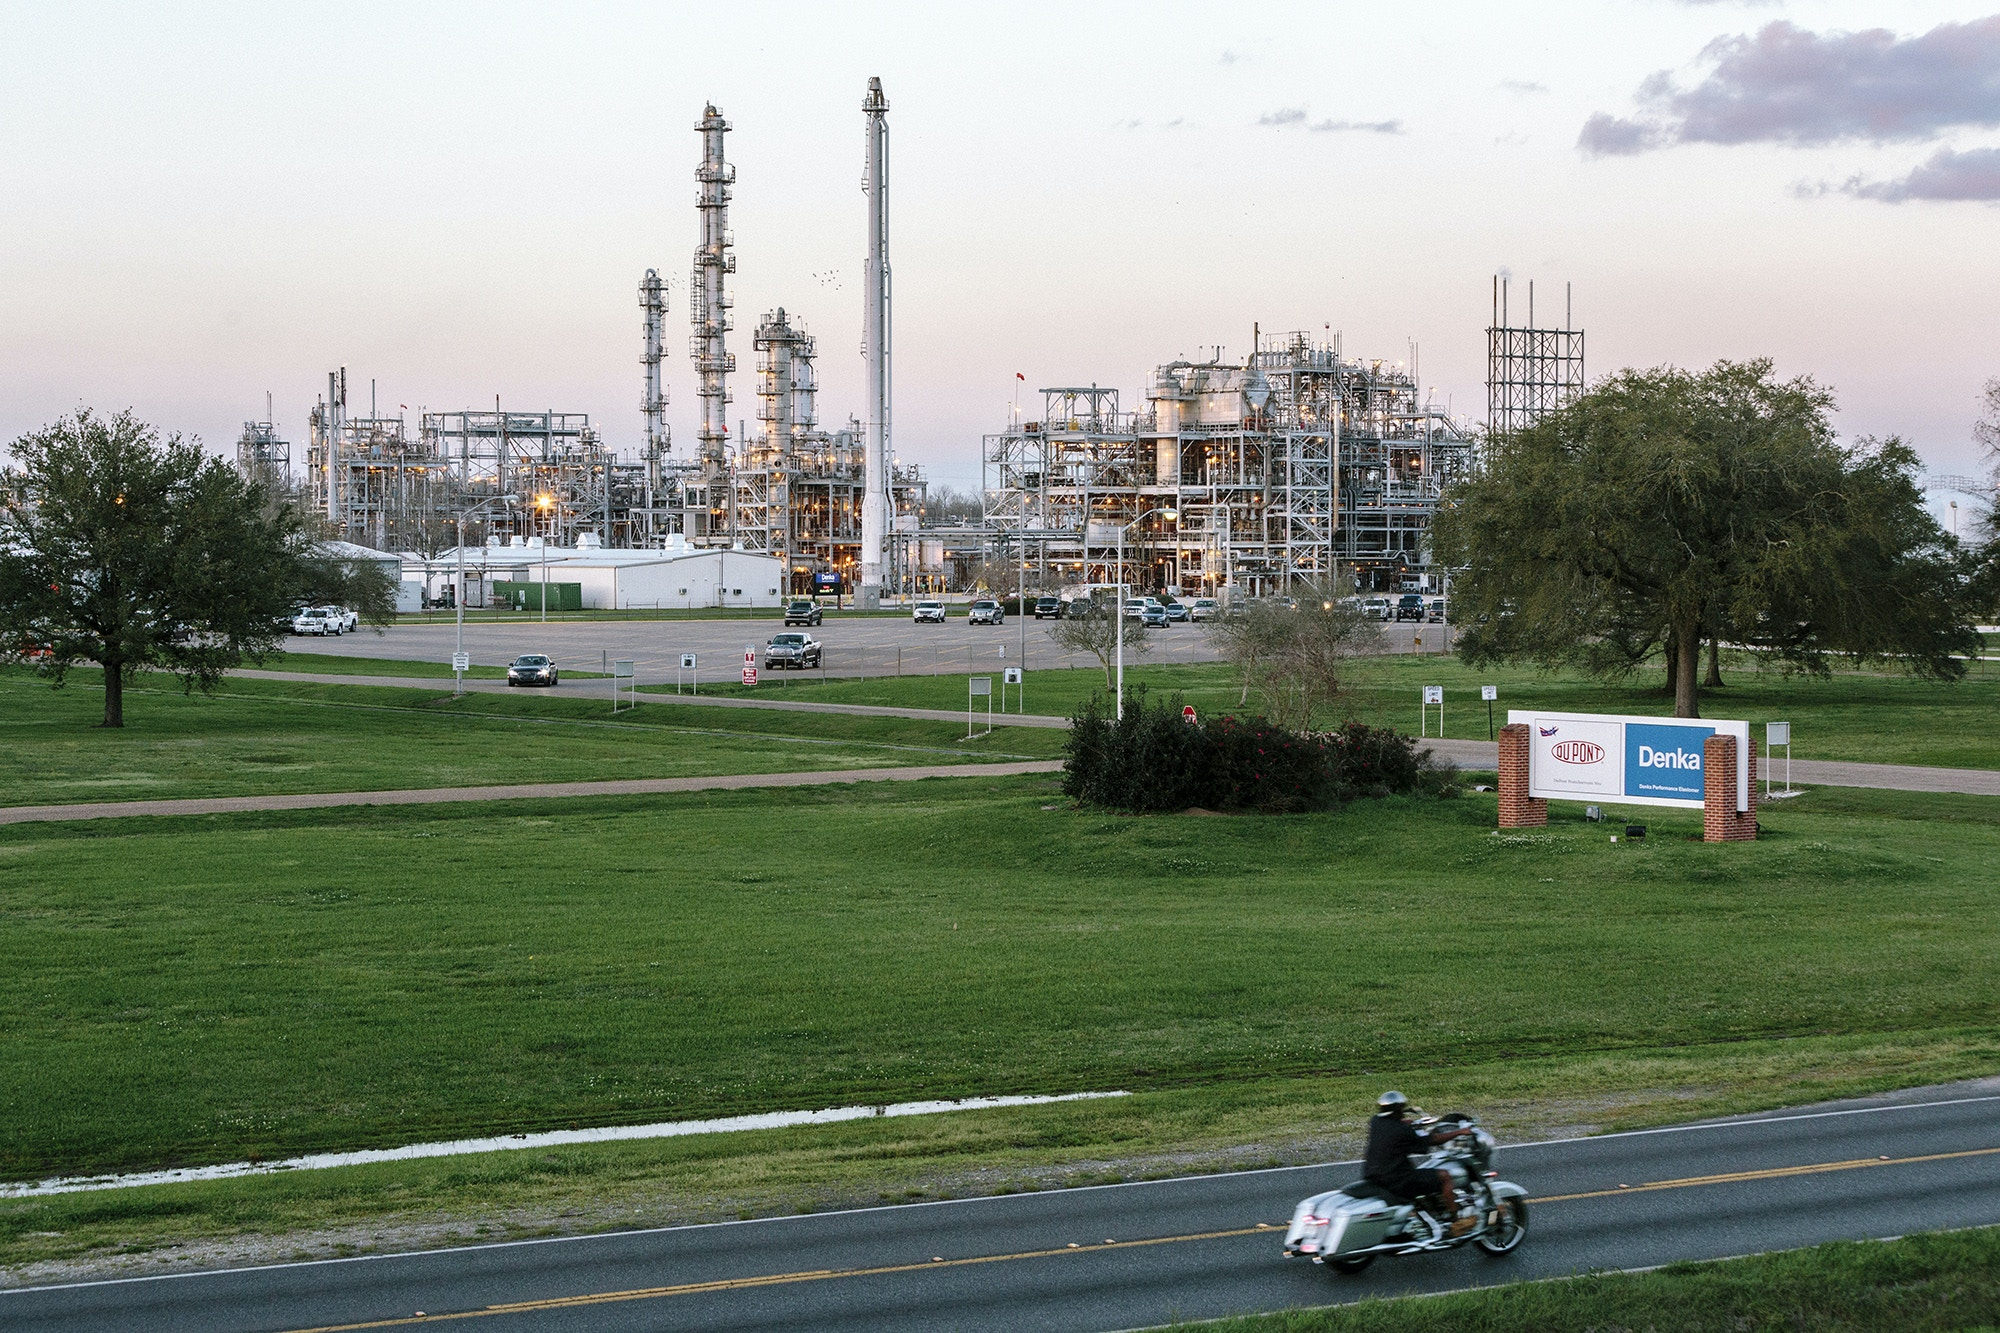 Reserve, LA - Feb 24, 2017 - The Dupont/Denka plant as seen from a levee wall on the opposite side of River Road.